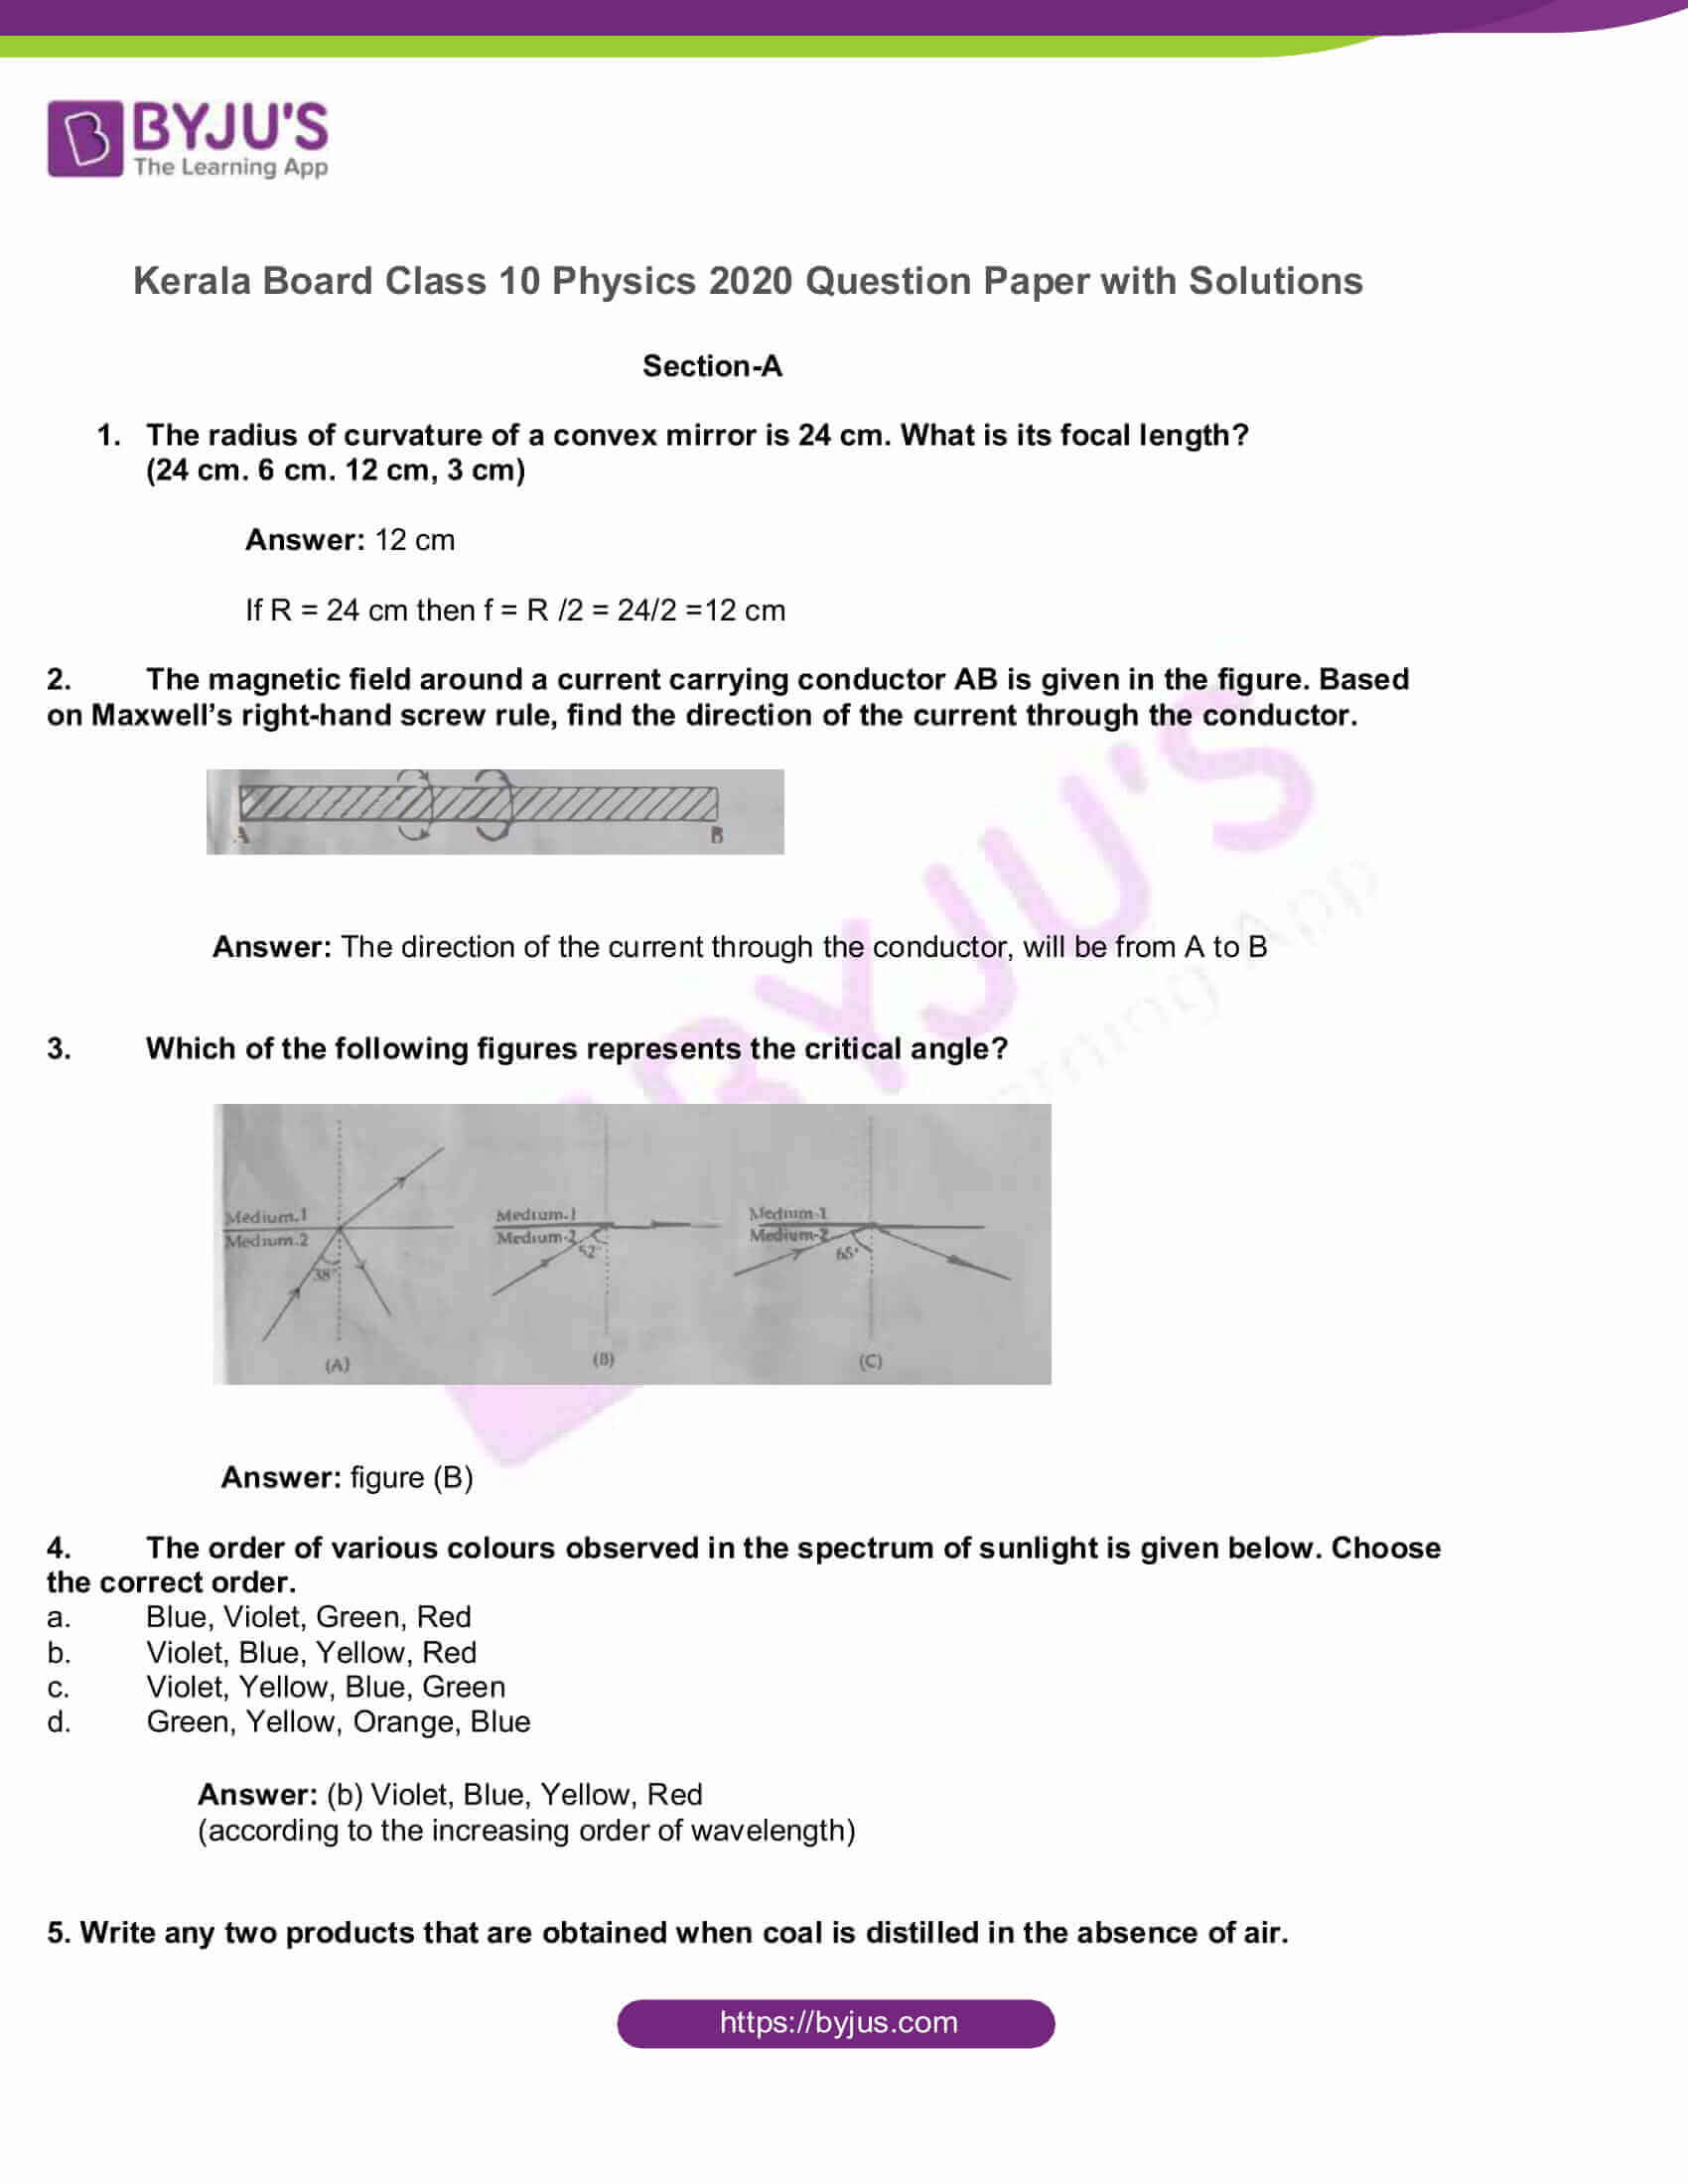 kbpe class 10 physics 2020 solutions 1